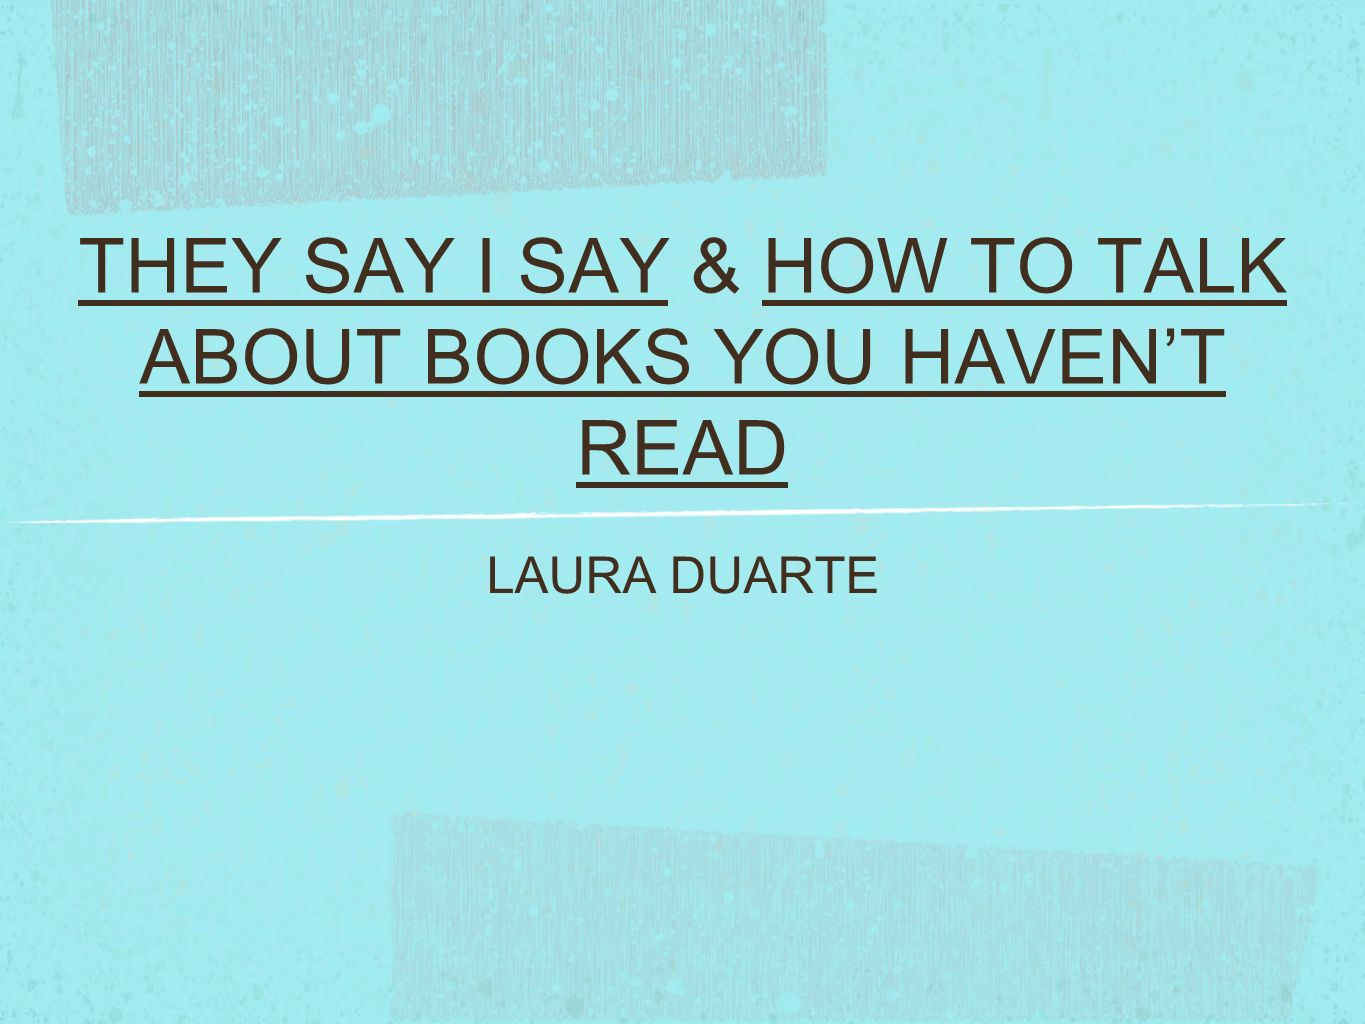 THEY SAY I SAY & HOW TO TALK ABOUT BOOKS YOU HAVENT READ LAURA DUARTE